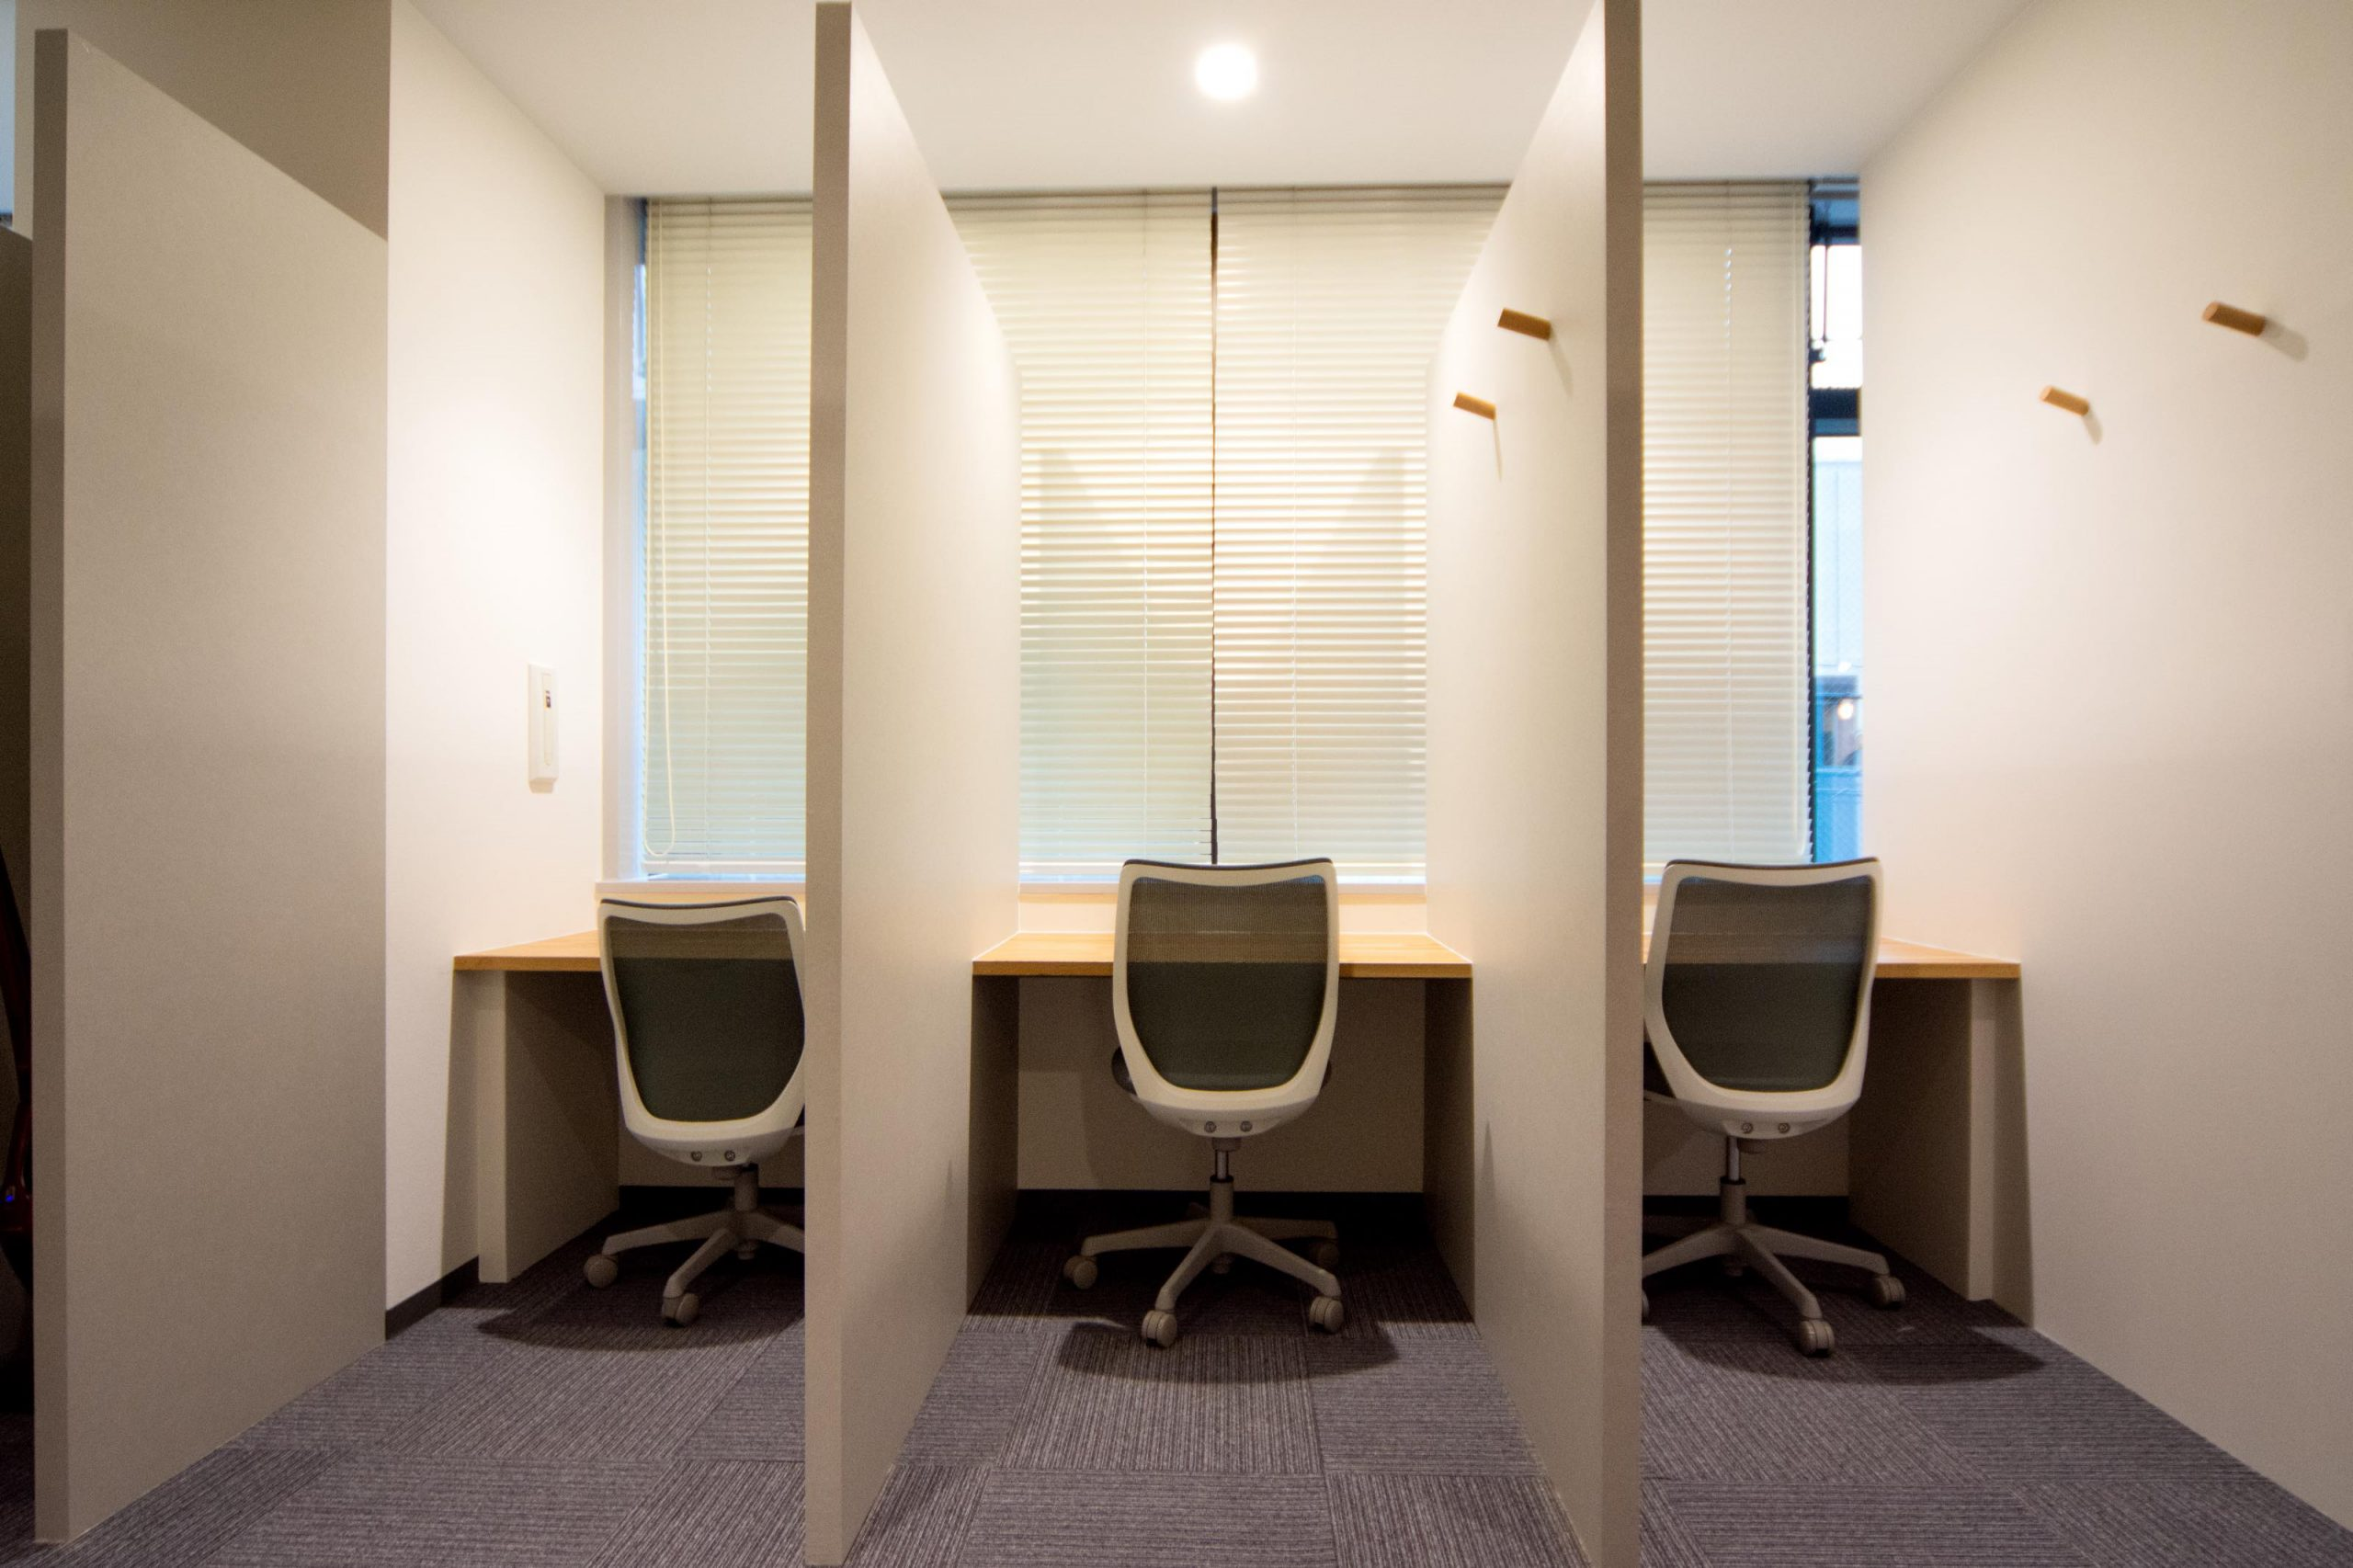 booth seat & private room03